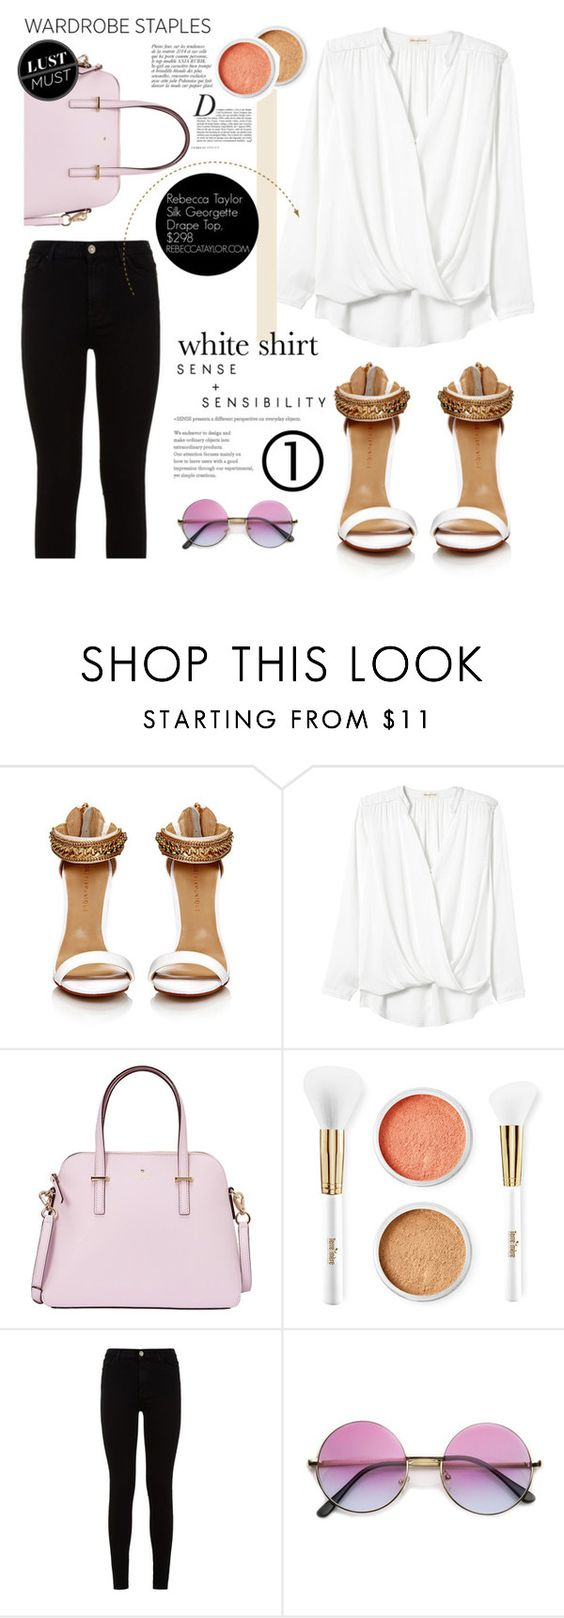 """""""Serena"""" by lumierekiss ❤ liked on Polyvore featuring Rebecca Taylor, Kate Spade, Anja, Terre Mère and 7 For All Mankind"""